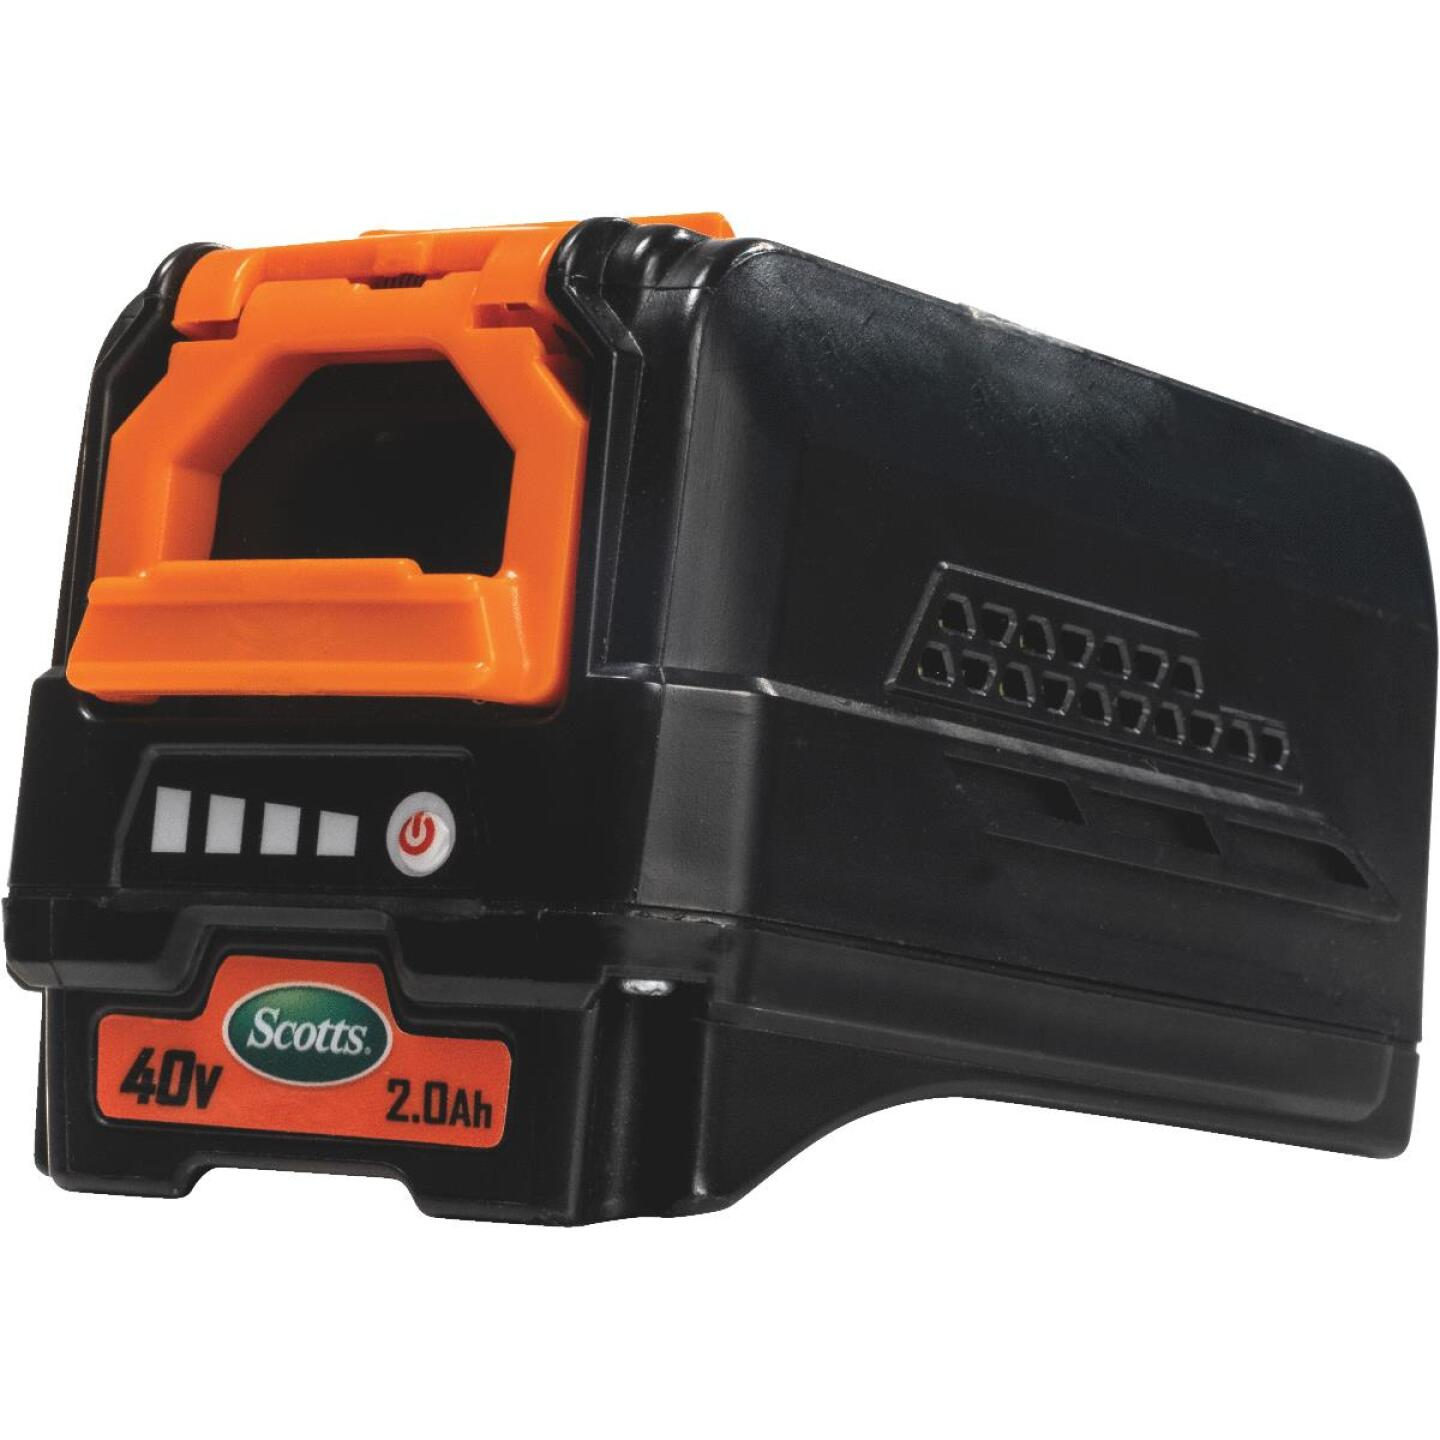 Scotts 40V 2.0Ah Replacement Tool Battery Image 4